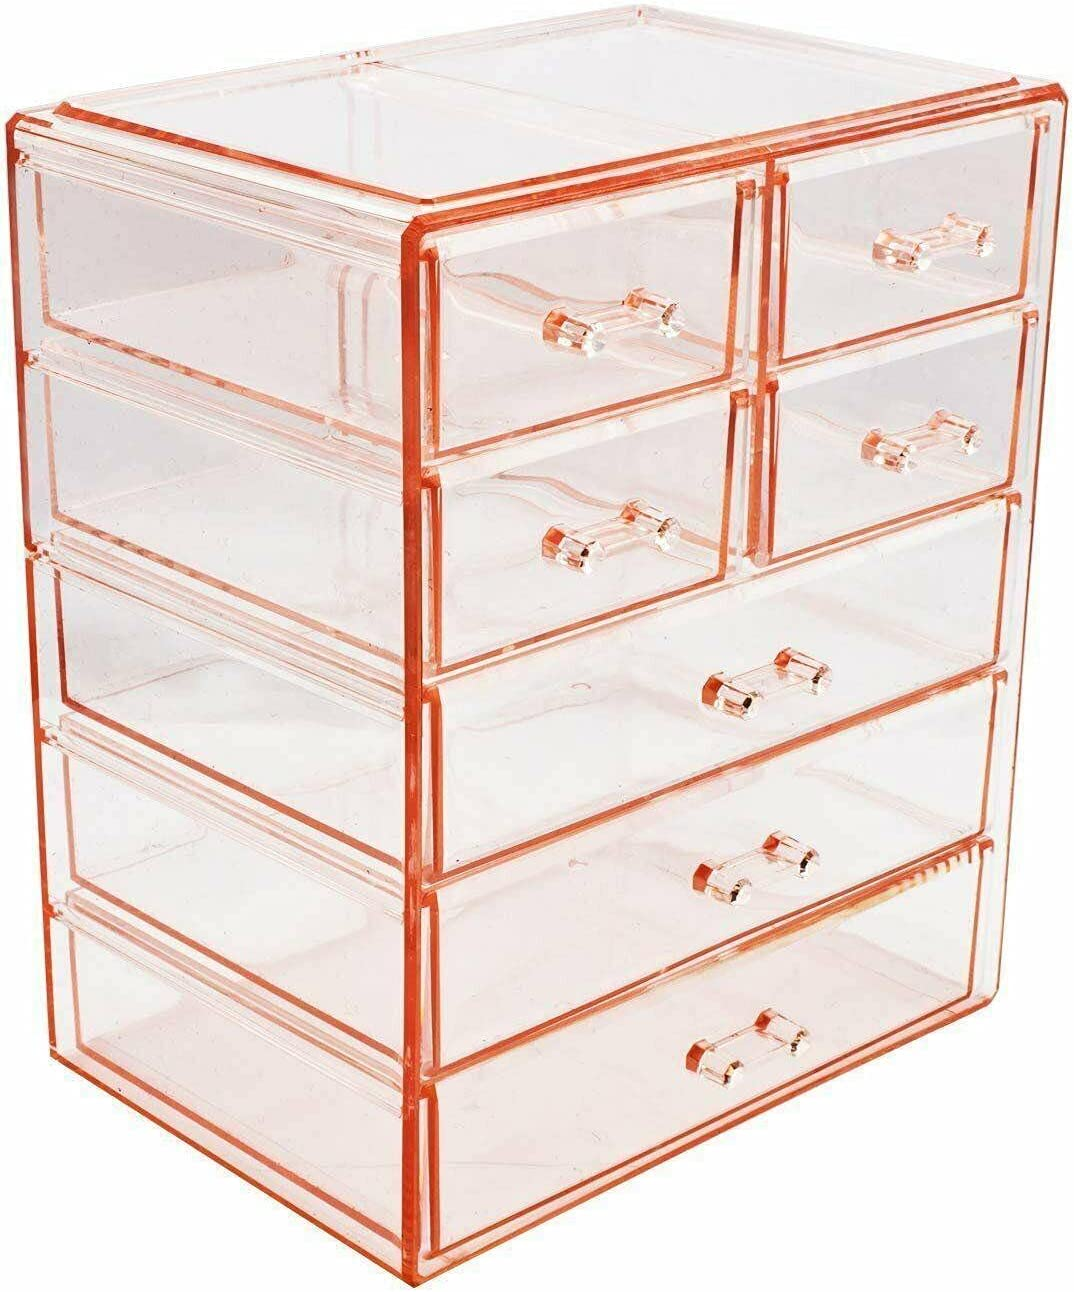 Cosmetics Sales of SALE Super beauty product restock quality top! items from new works Makeup and Jewelry Big Stylish Case Storage - Display